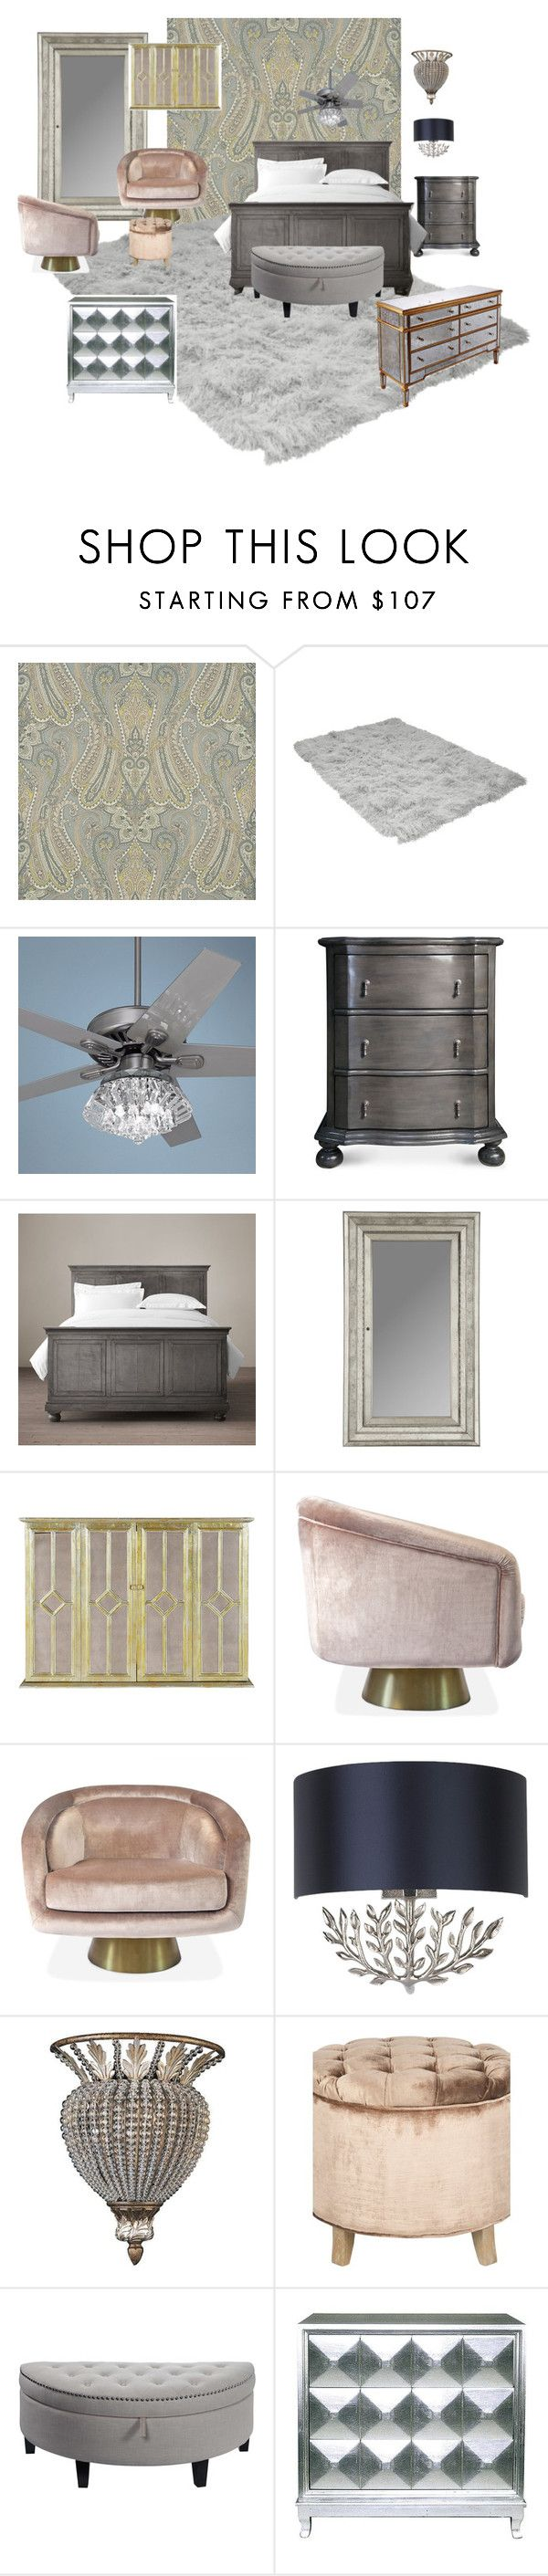 Untitled 25 by thelavenderlemon ❤ liked on polyvore featuring interior interiors restoration hardwareneiman marcushome